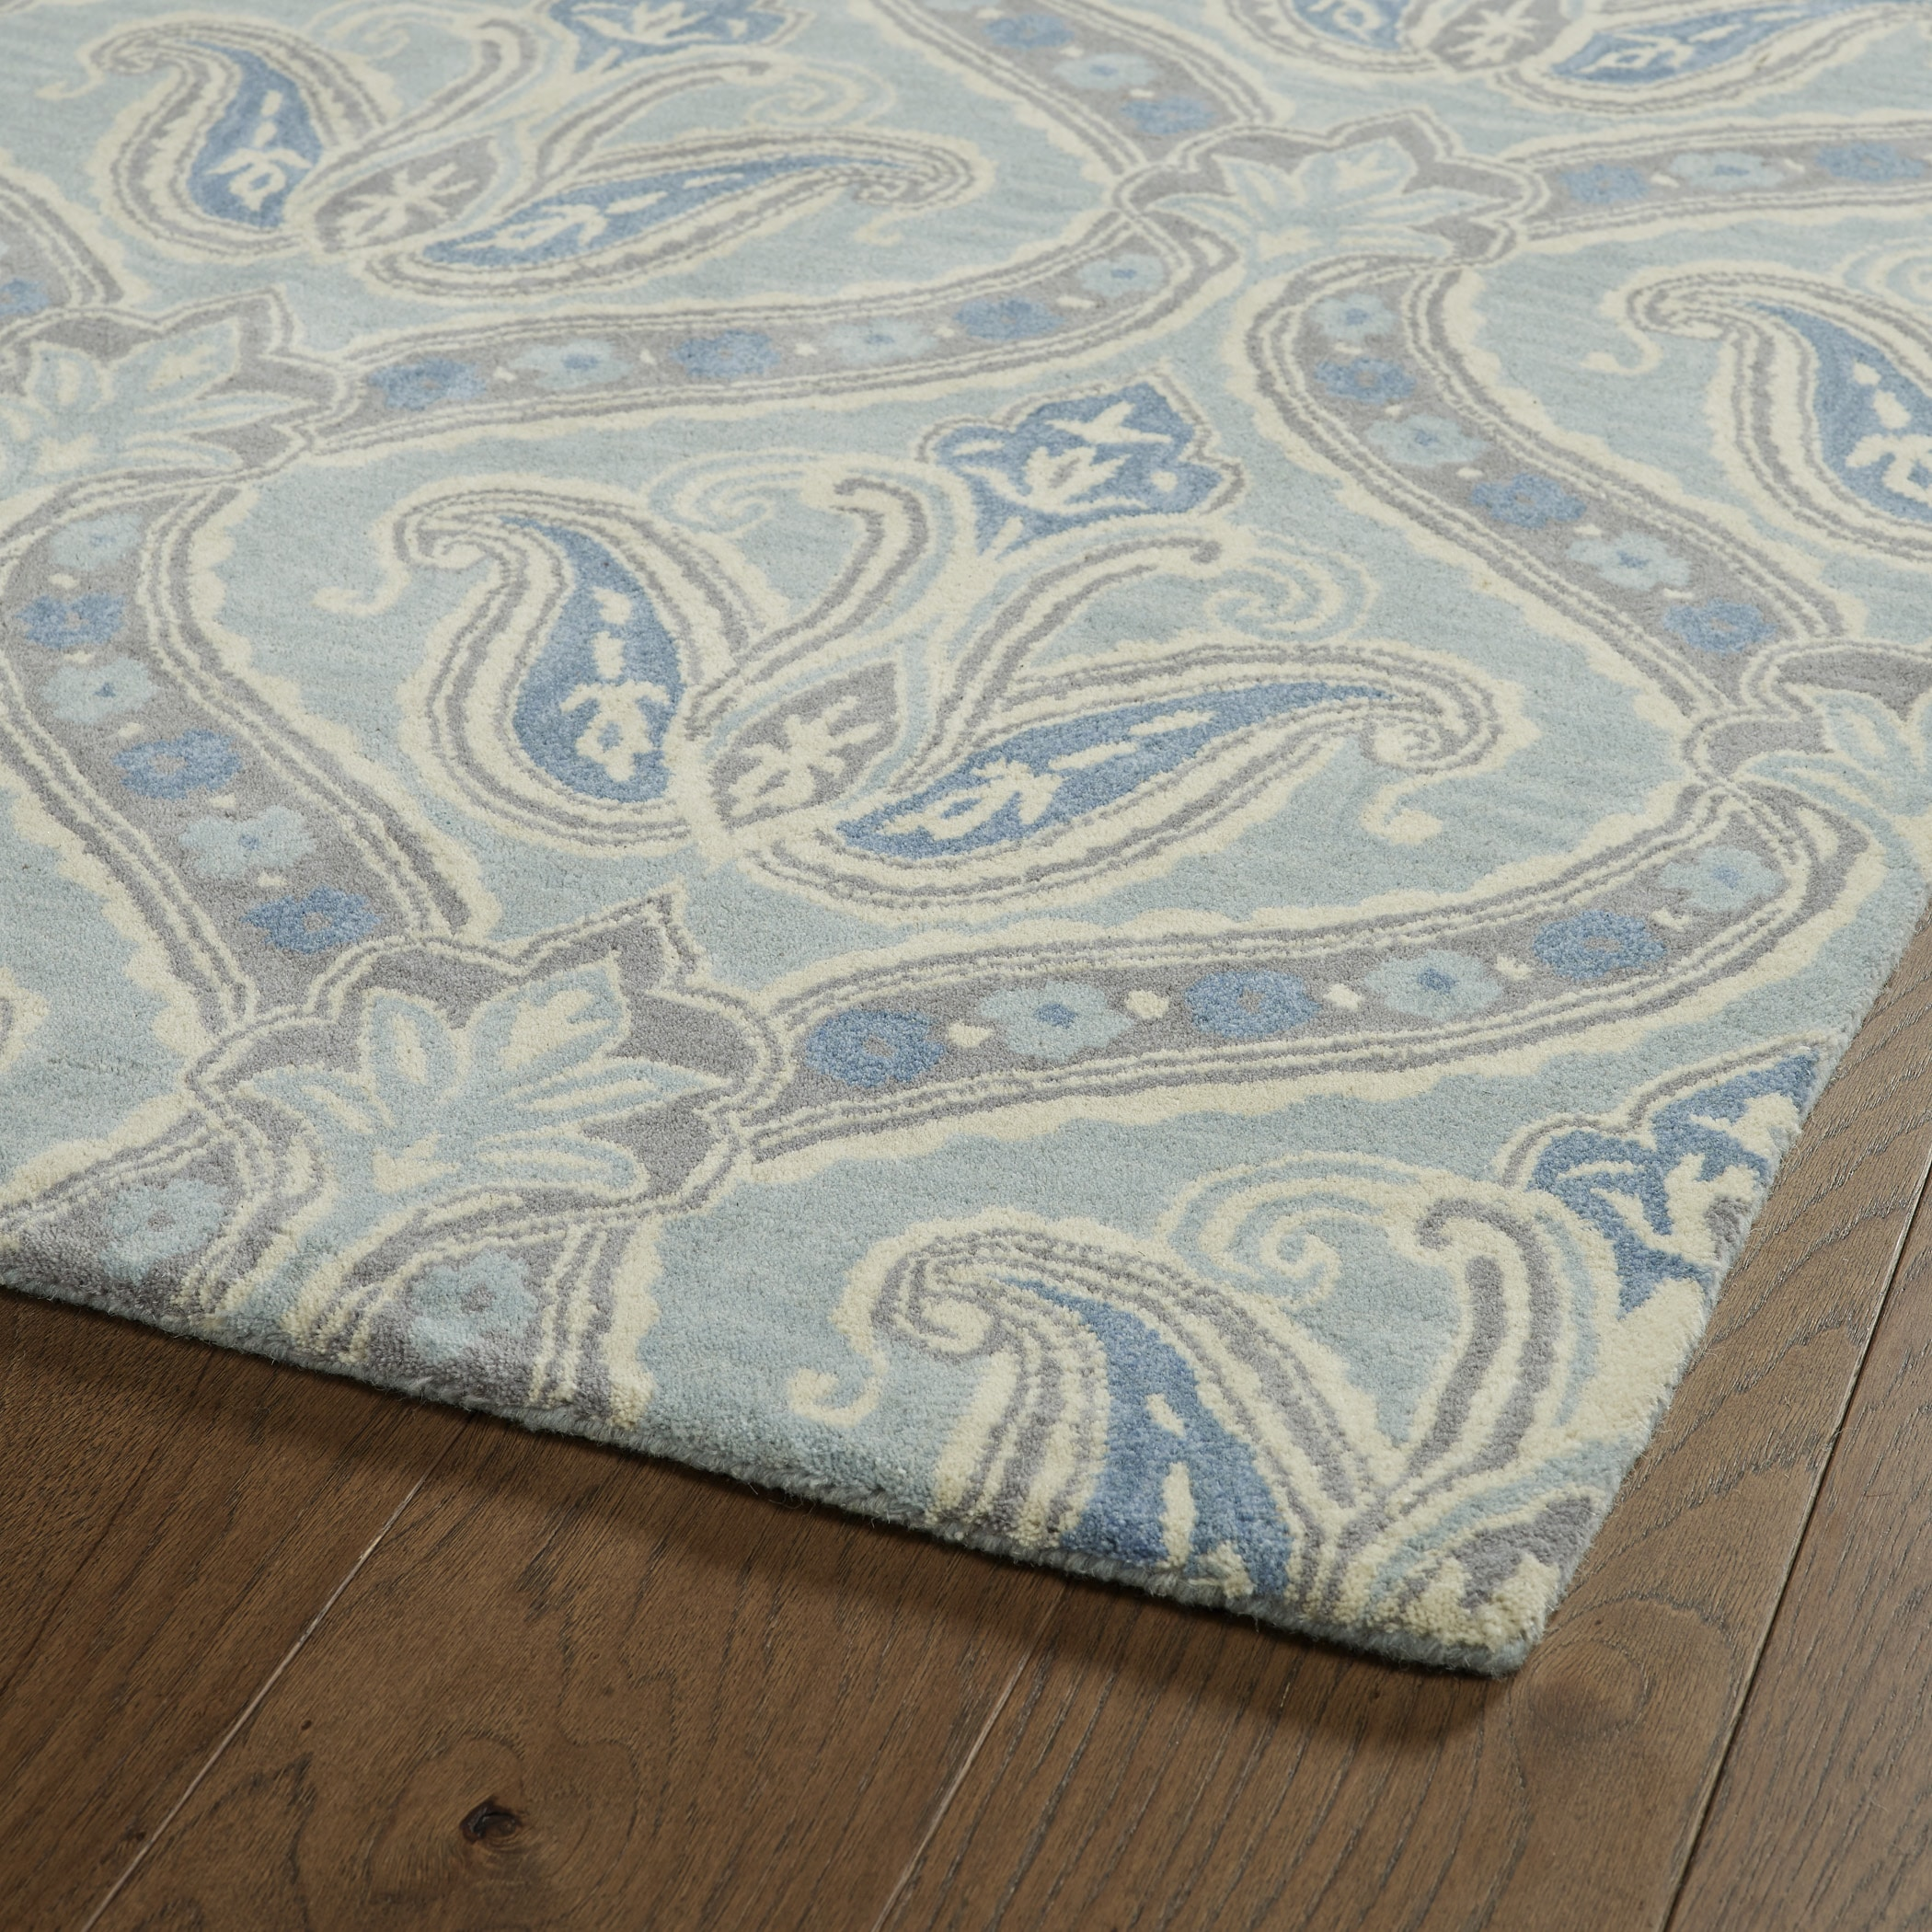 Hand Tufted Seldon Spa Blue Paisley Rug 8 X 10 Free Shipping